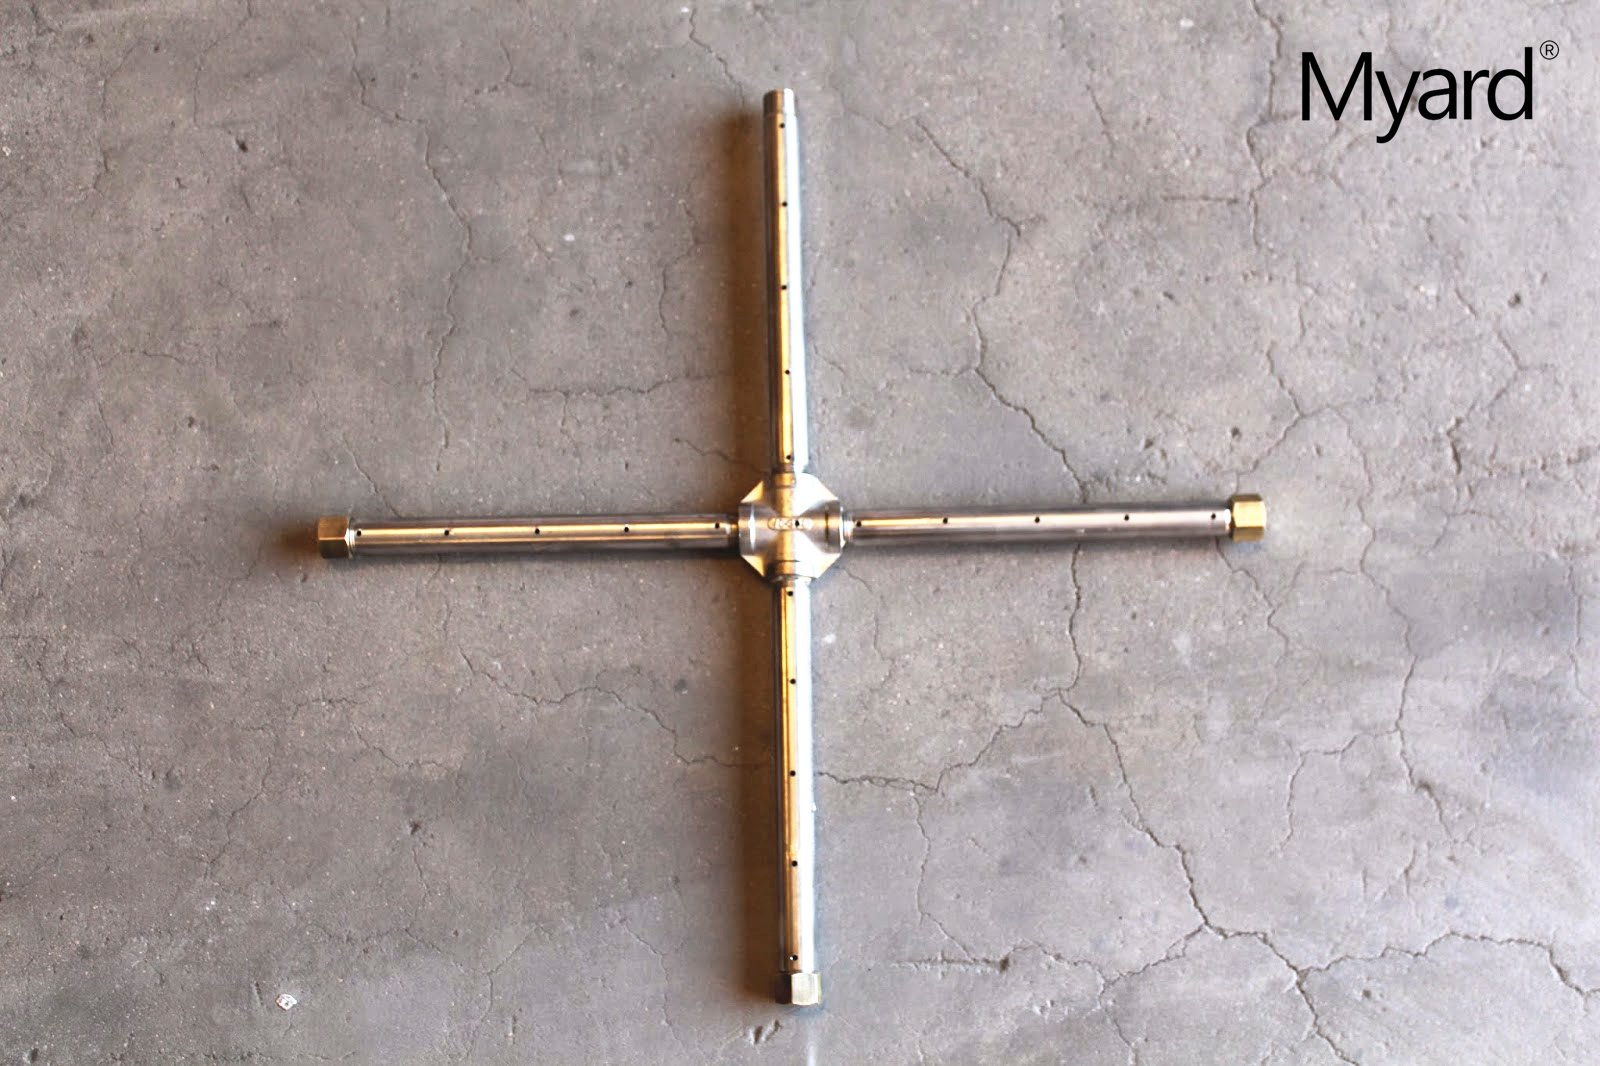 """MaxRed Myard Heavy Duty Gas Burner Tube Pipe for 30"""" Diameter Fire Pit/Fireplace/Logs"""